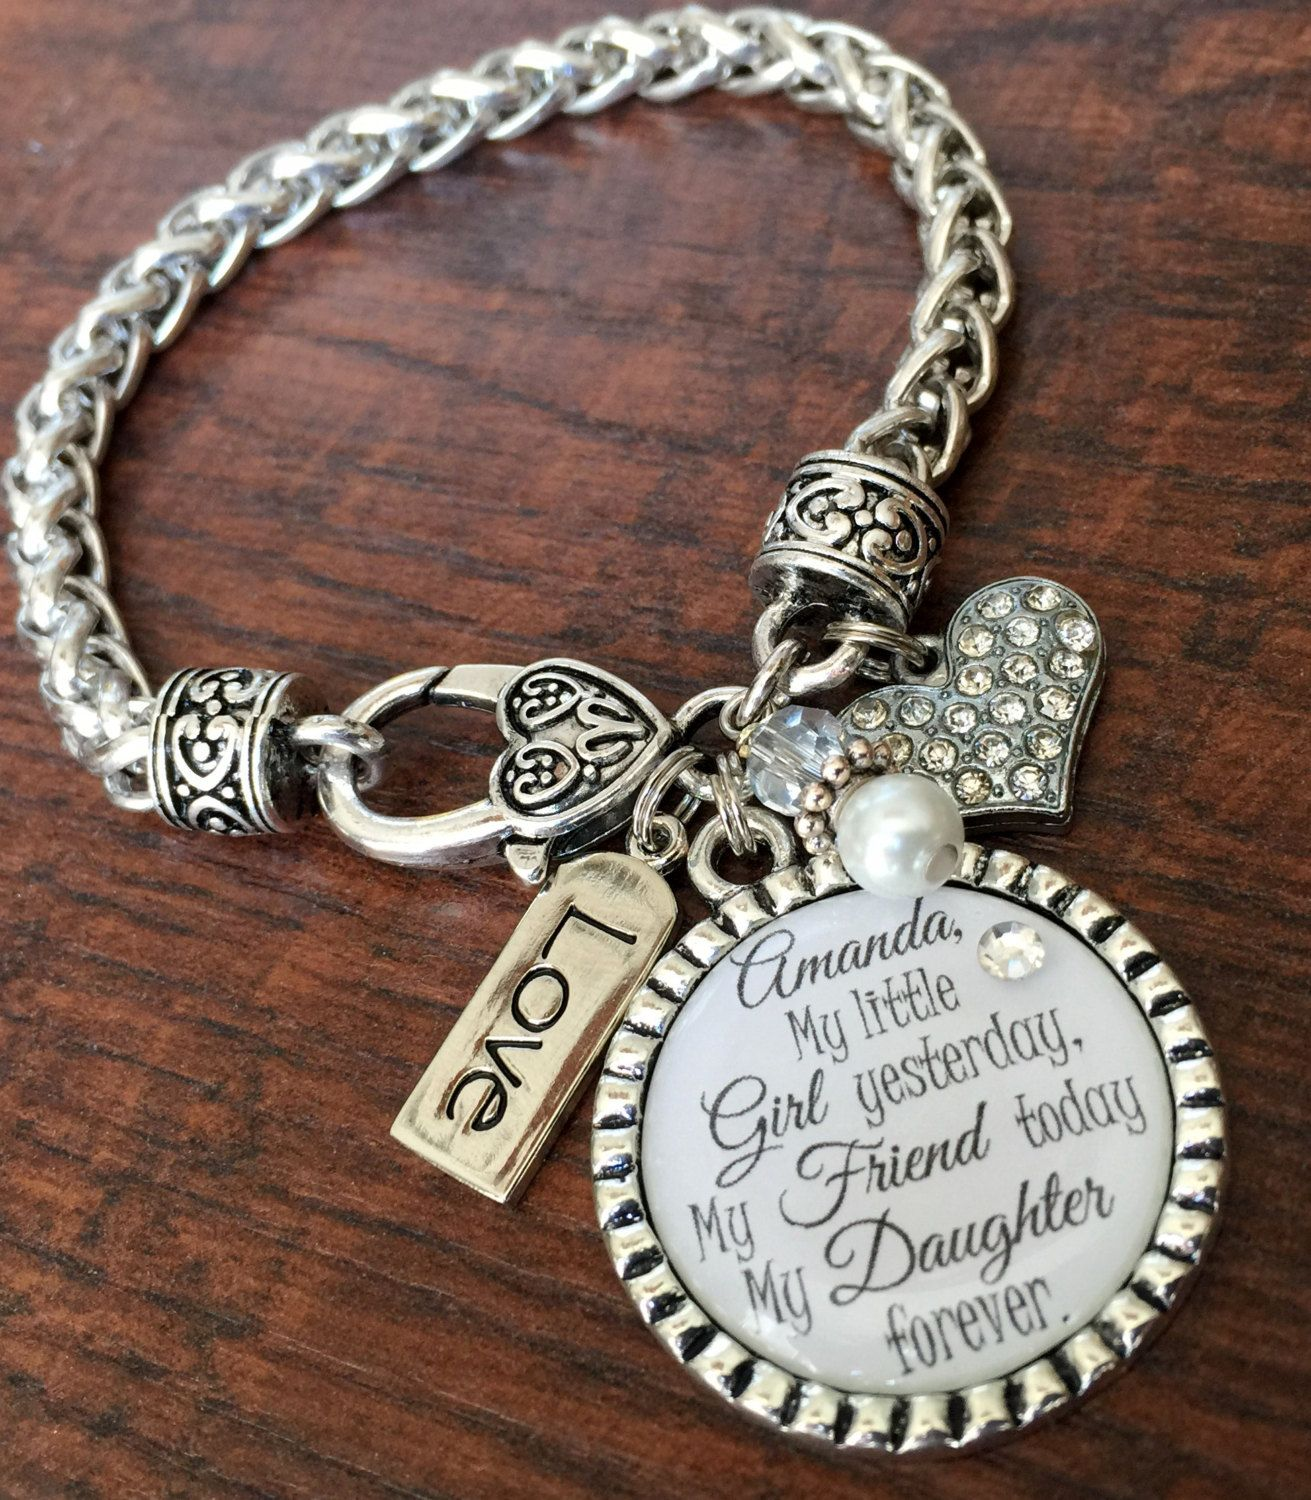 Mother Daughter Bracelet Jewelry In Law Christmas Gift